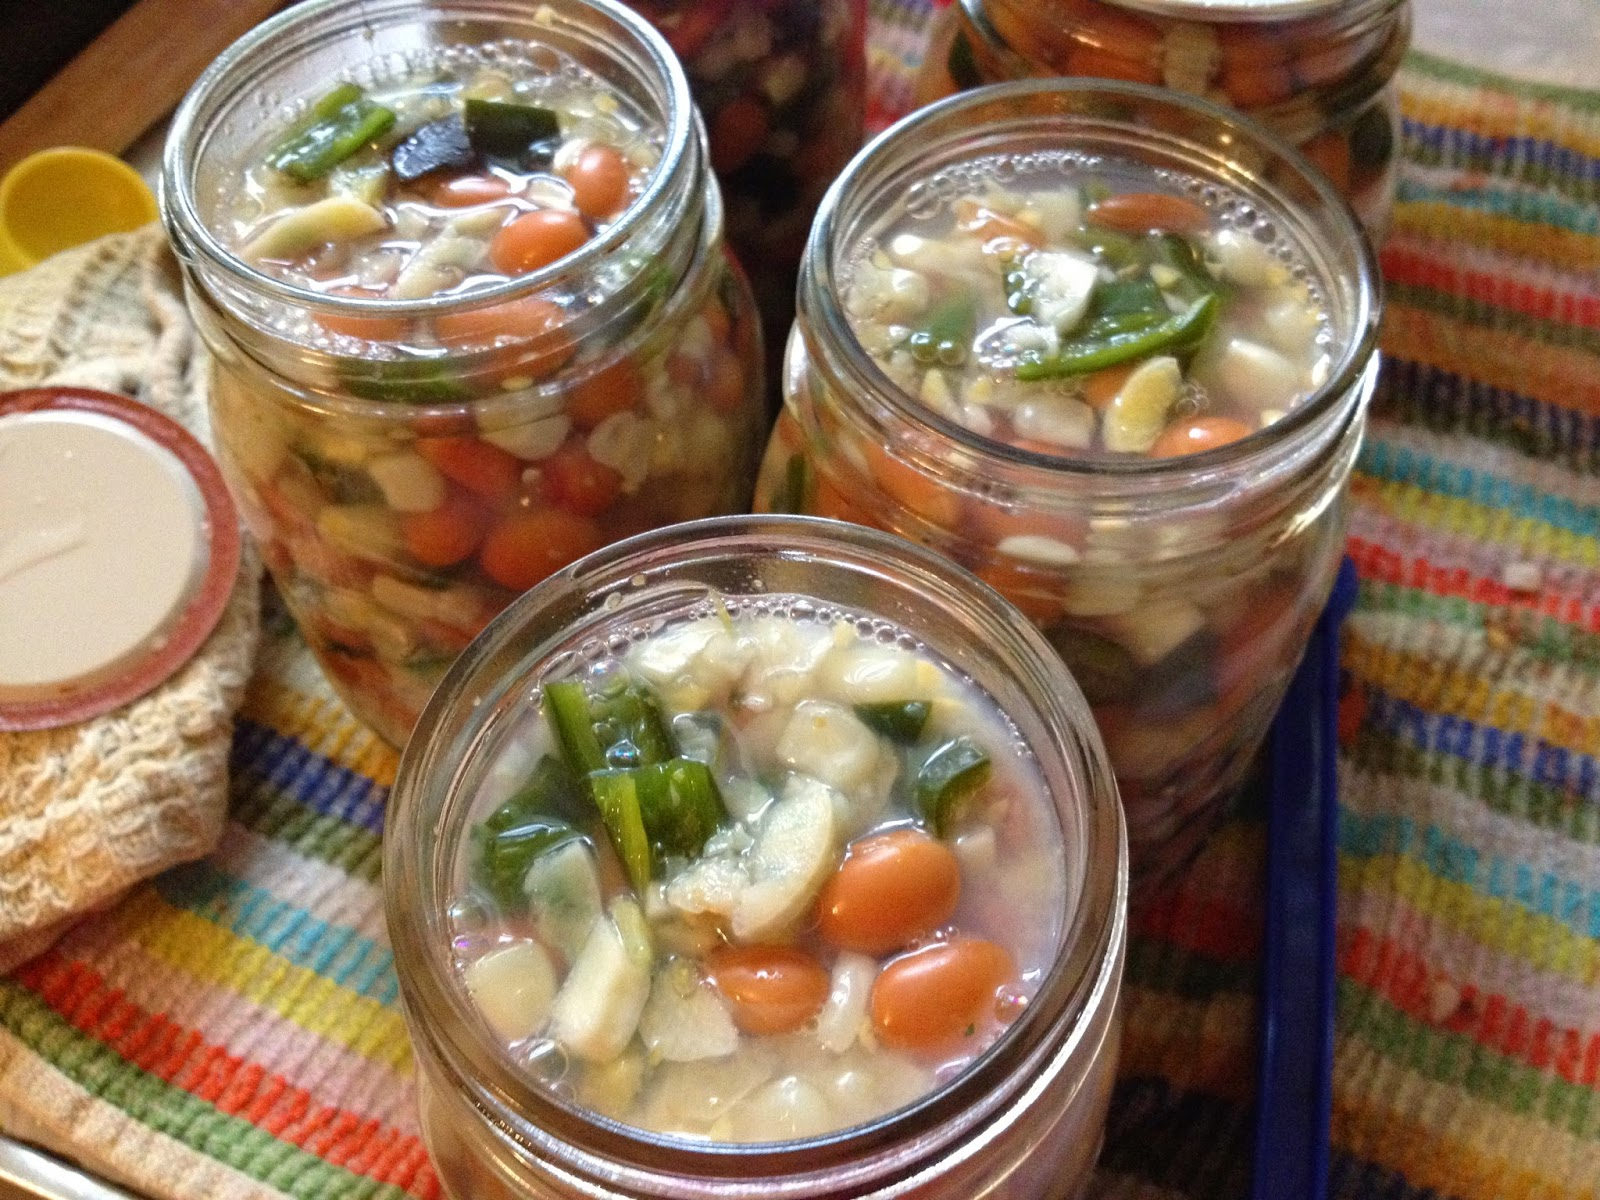 Headspace: Something New: Pickled Pintos, Corn, and Poblano Peppers